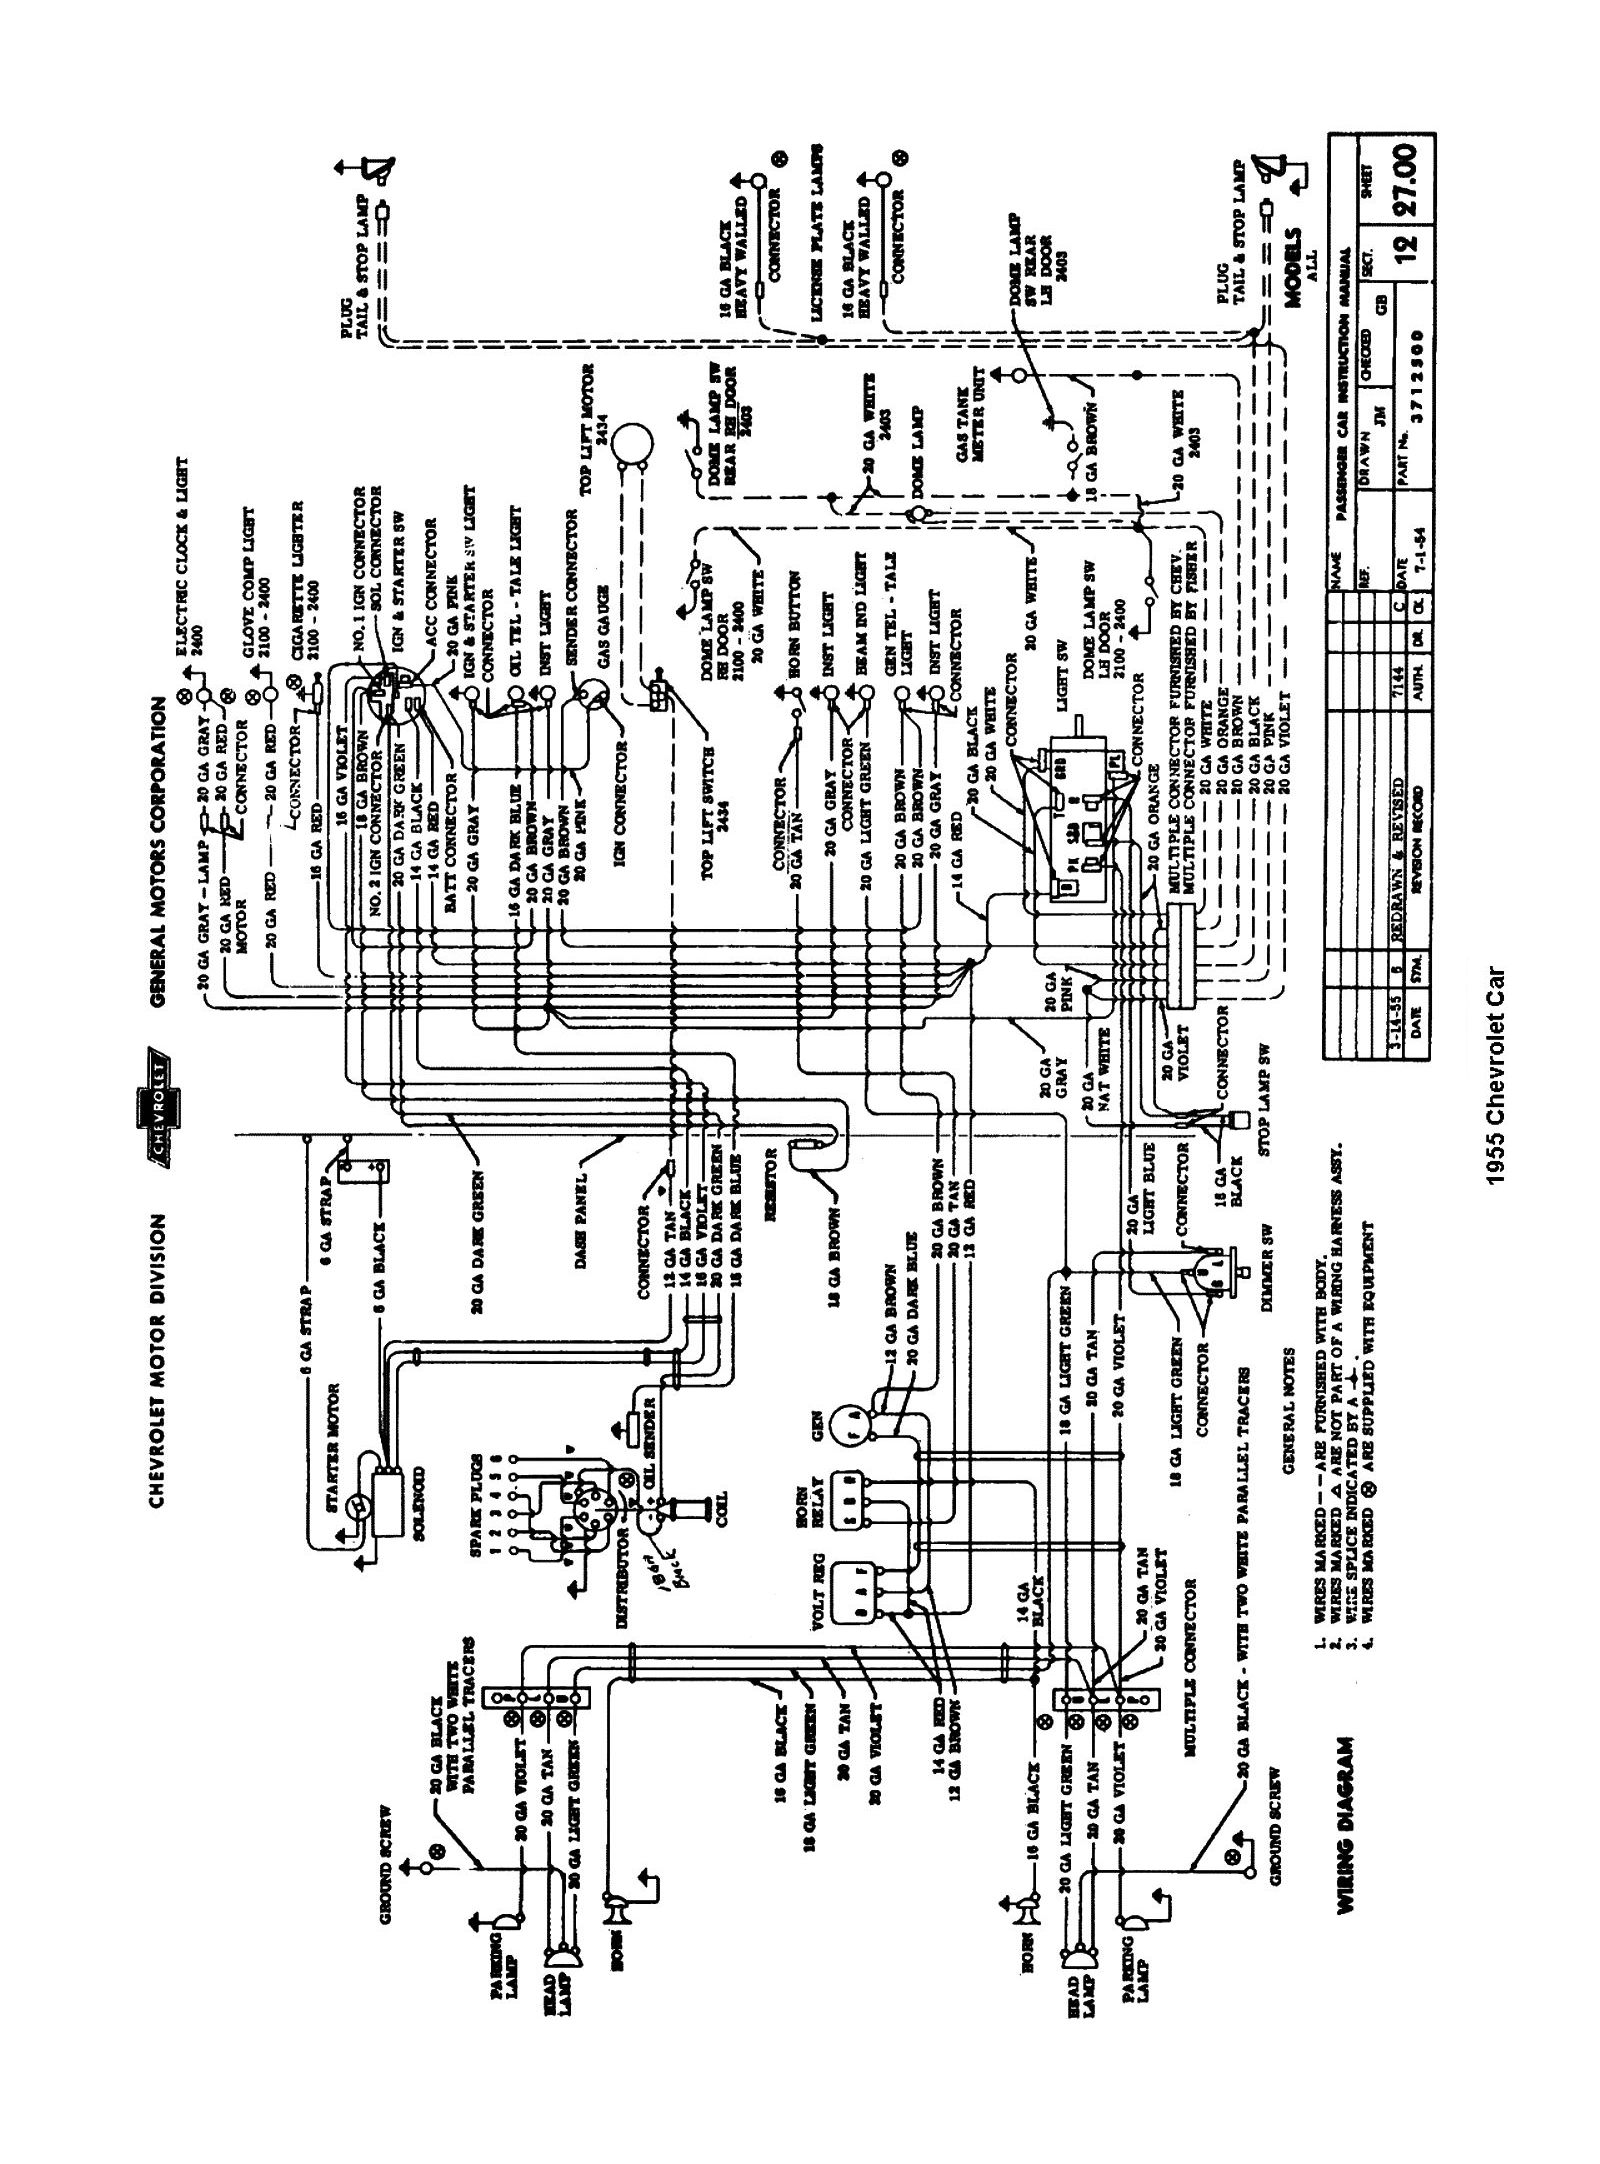 55car1 shop wiring diagram cart wiring diagram \u2022 wiring diagrams j 1950 chevy truck wiring diagram at alyssarenee.co